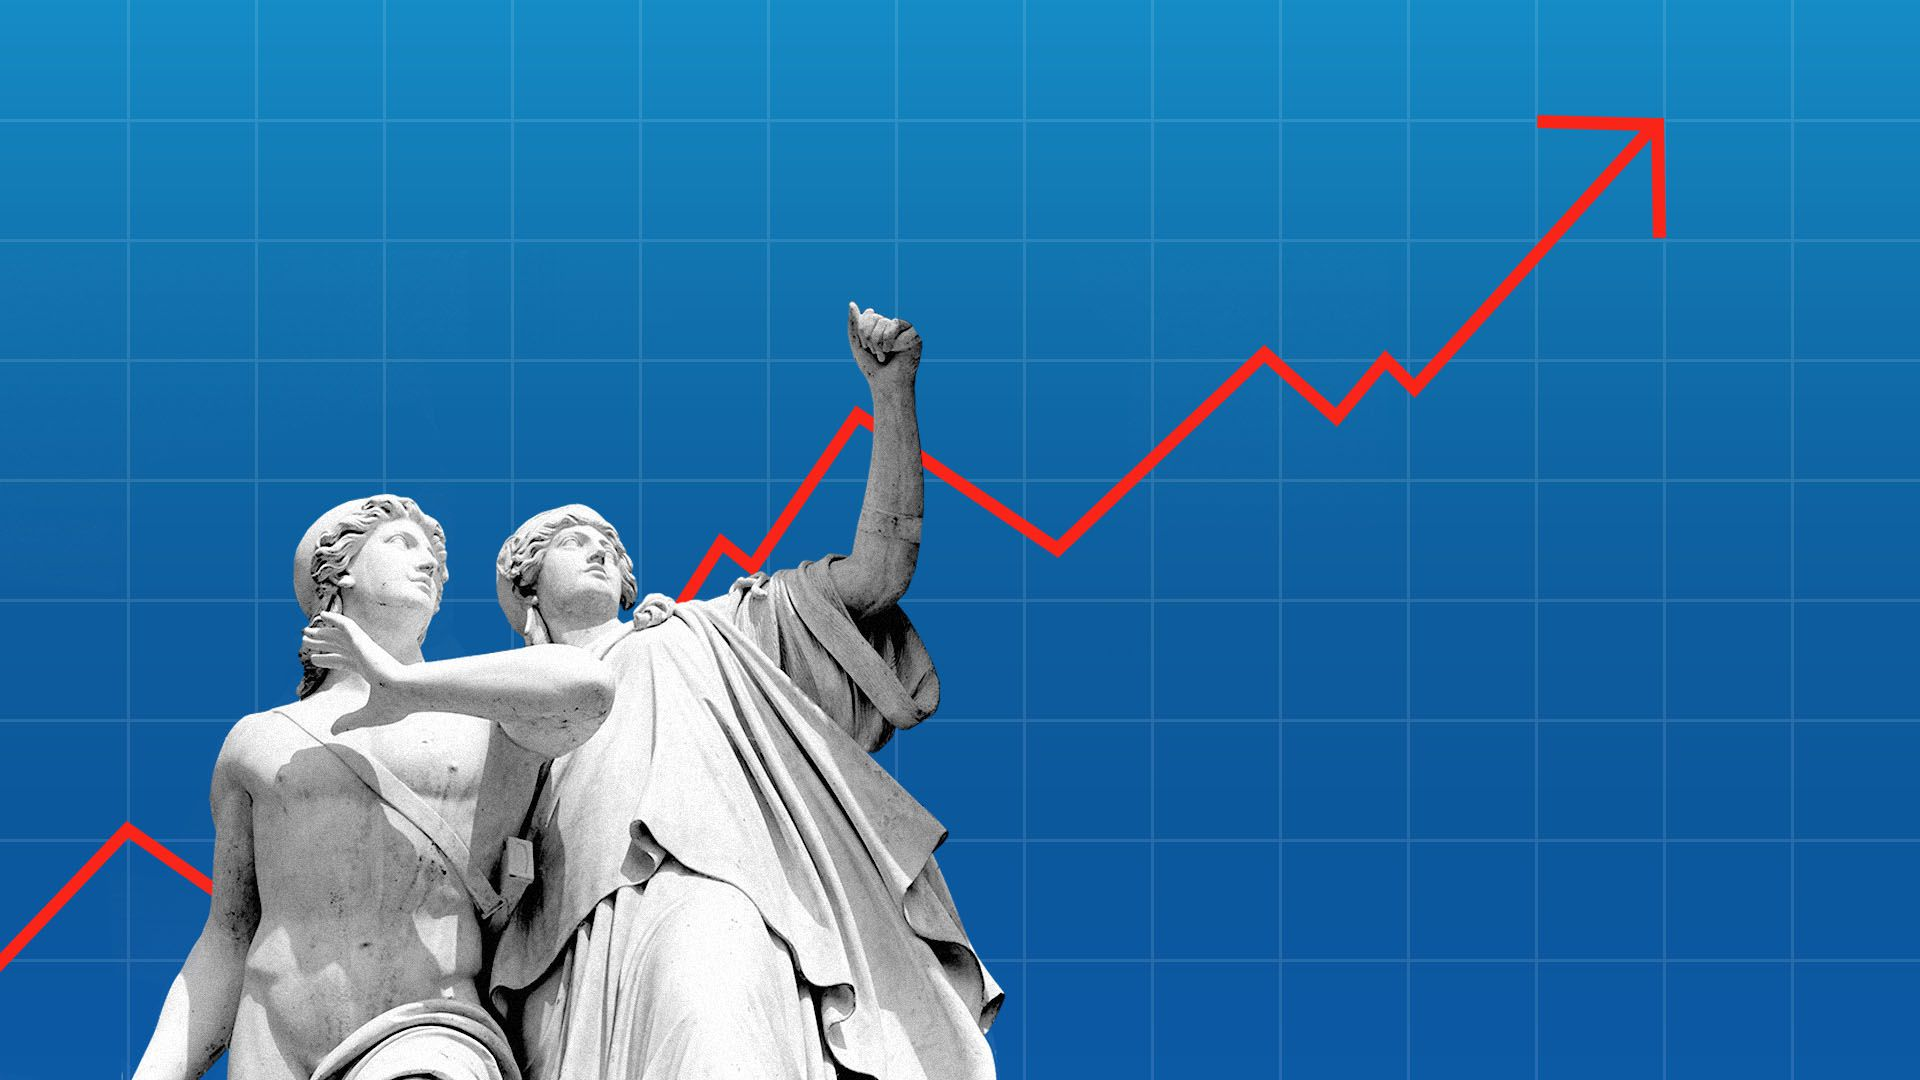 Illustration of an upward trending stock chart with Greek statues cheering on